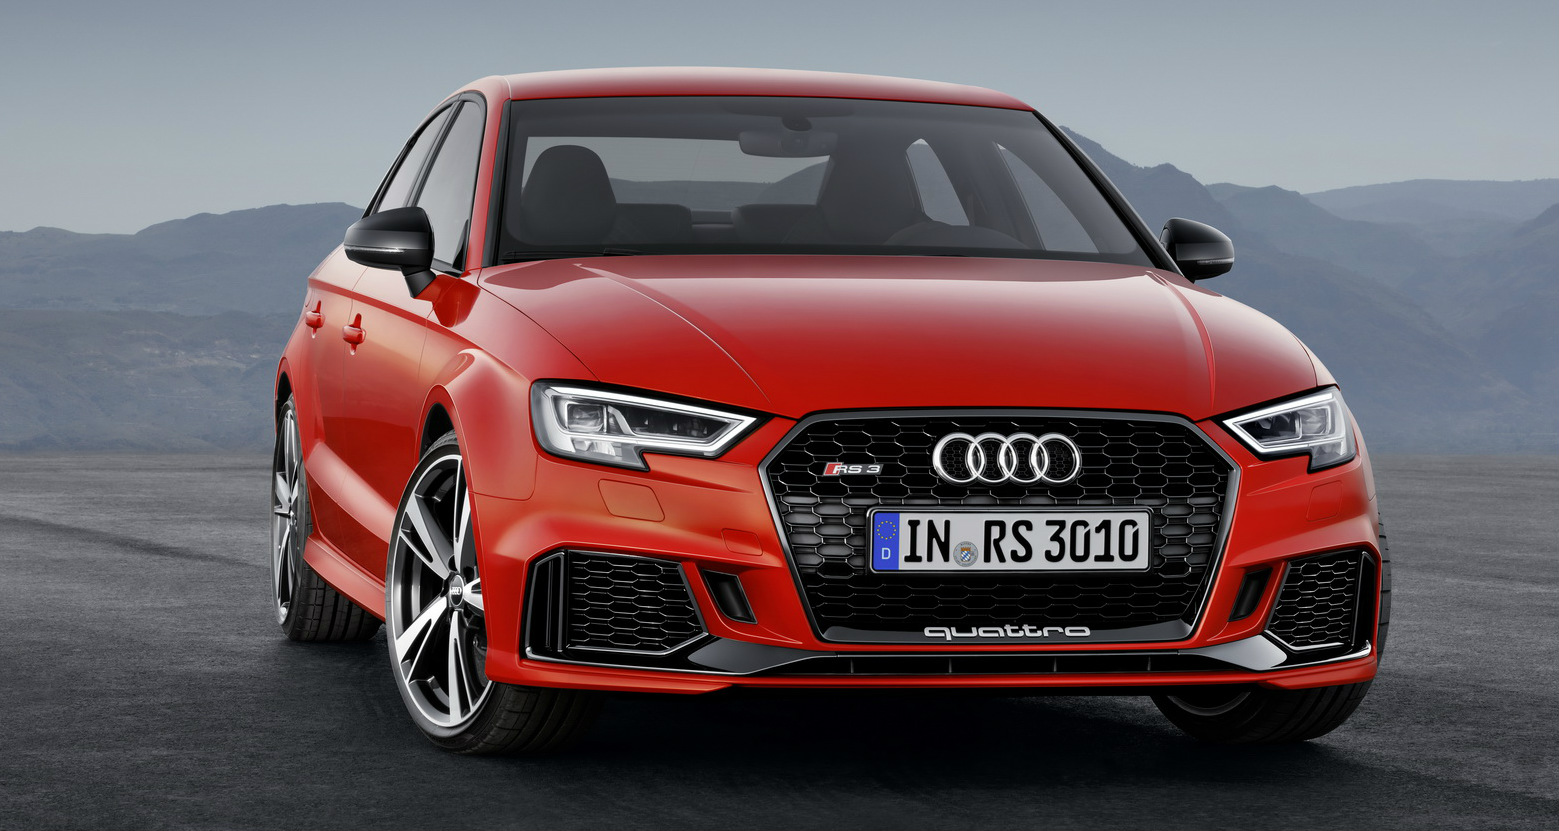 2017 Audi RS3 Sedan Unveiled - Coming To Australia Next Year